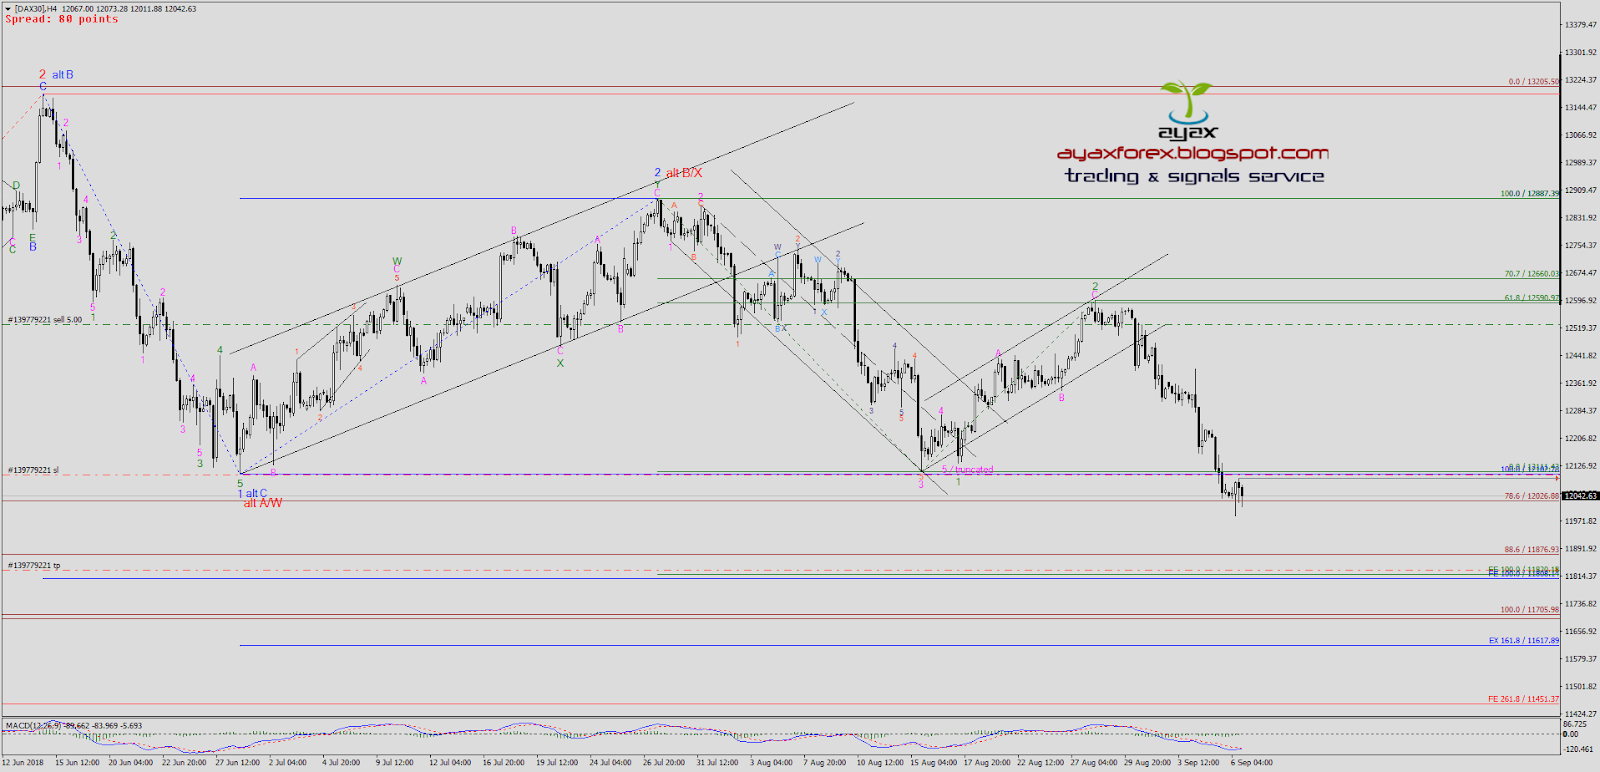 AYAX FOREX TRADING AND SIGNALS SERVICE: #DAX / H4 Outlook